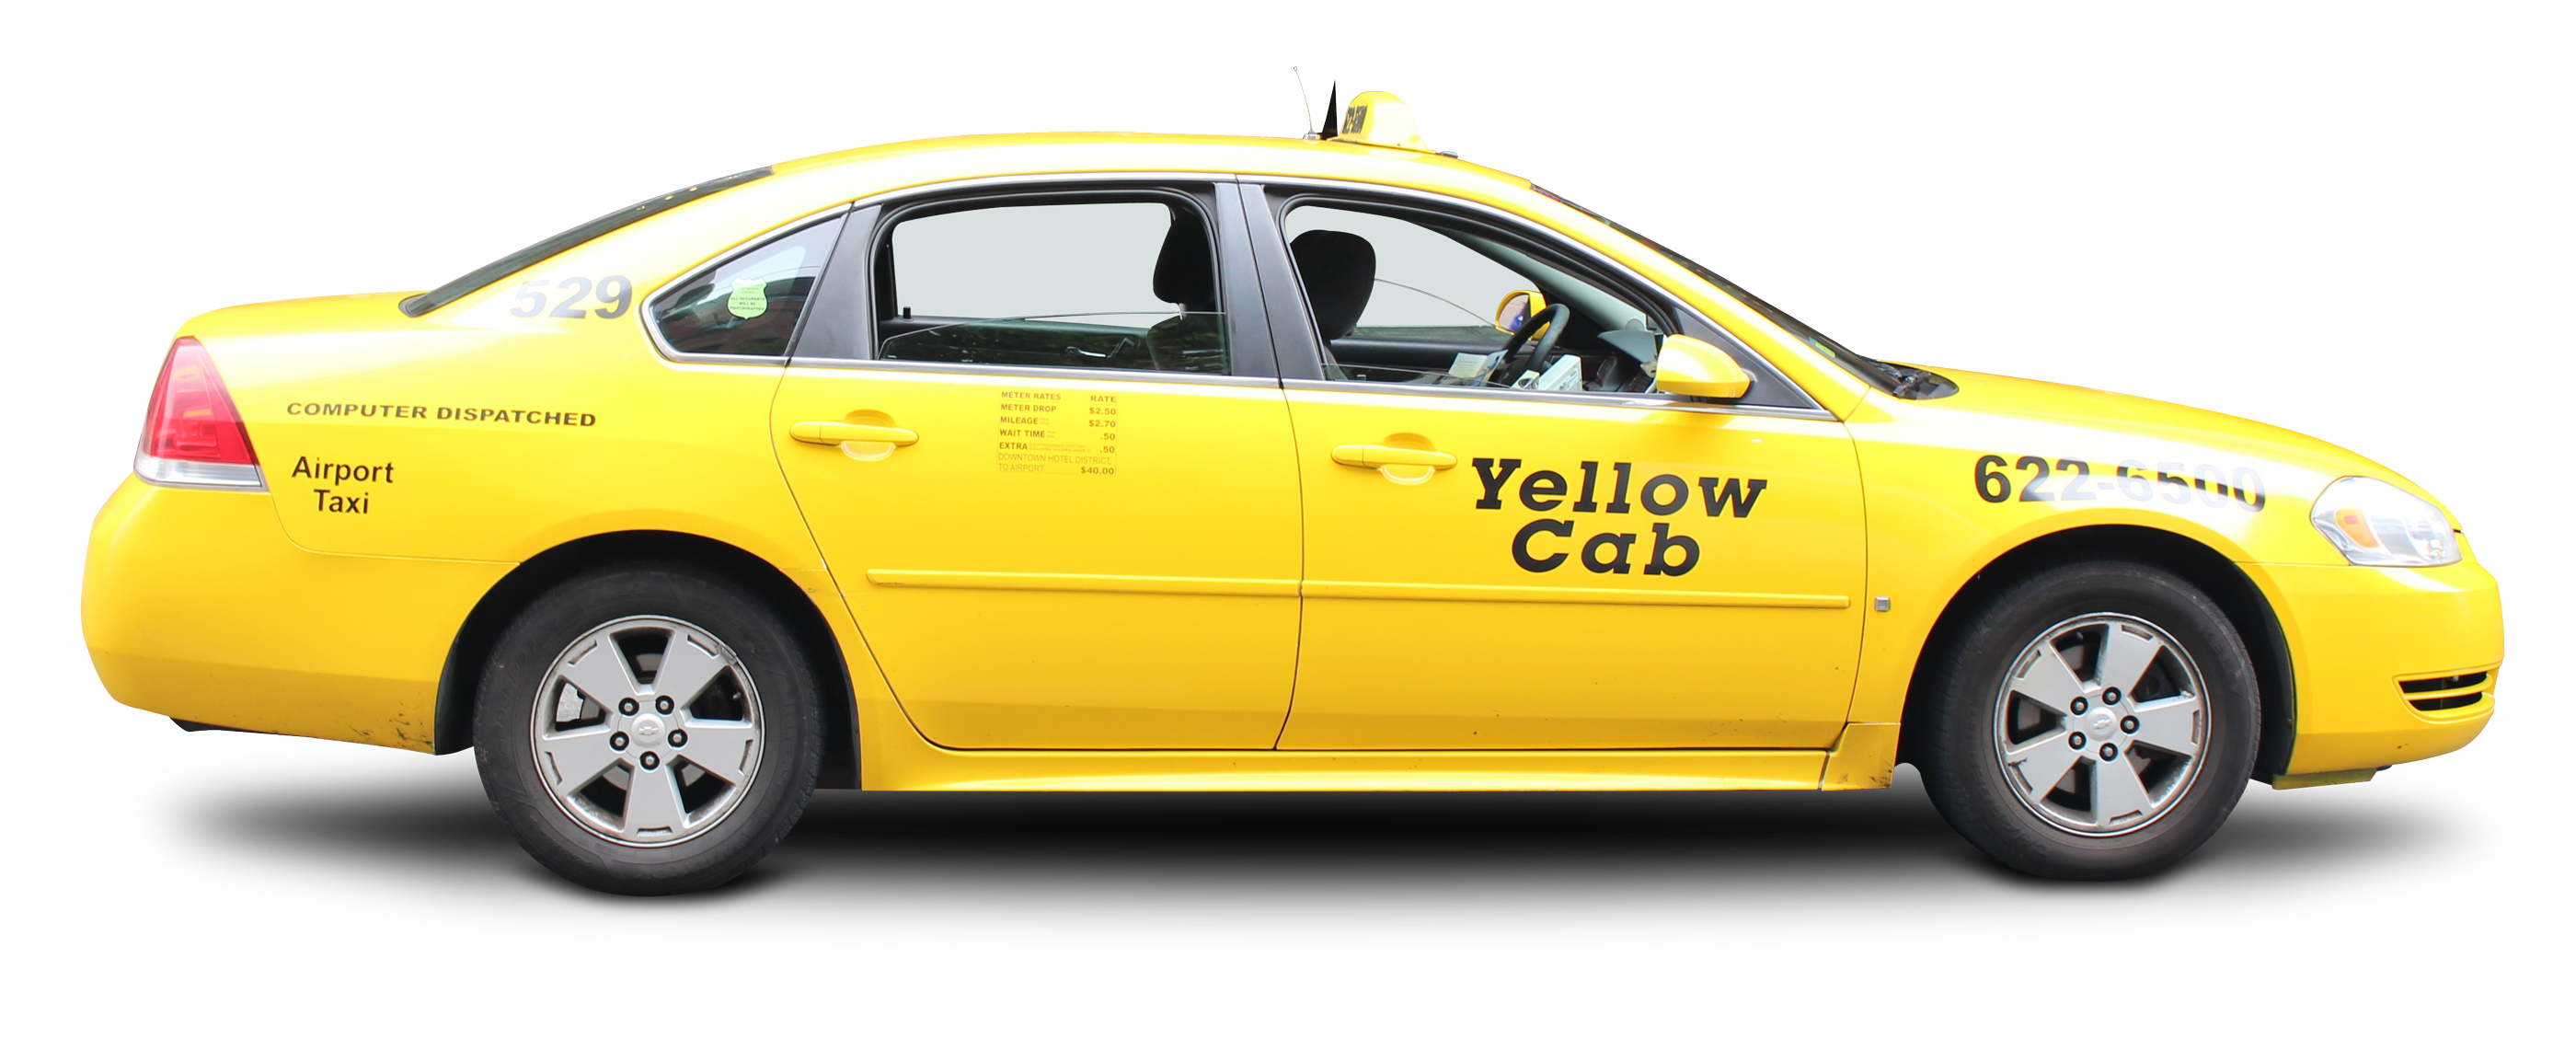 Taxi Cab PNG Image